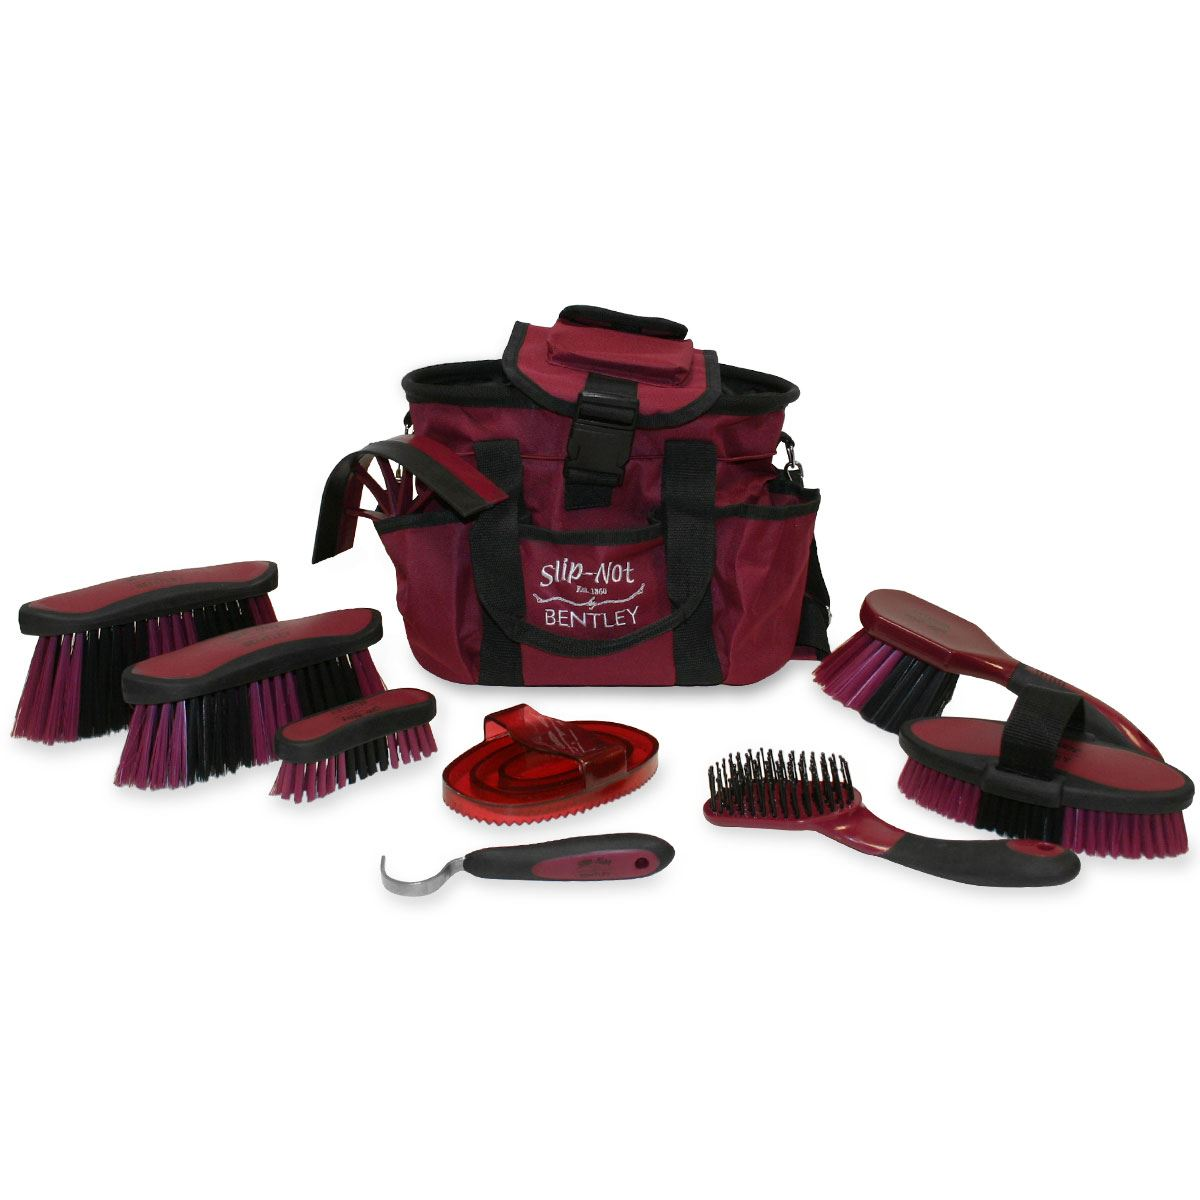 Bentley Equestrian Deluxe Antibacterial Grooming Brushes Horse Cleaning Kit Set Ebay